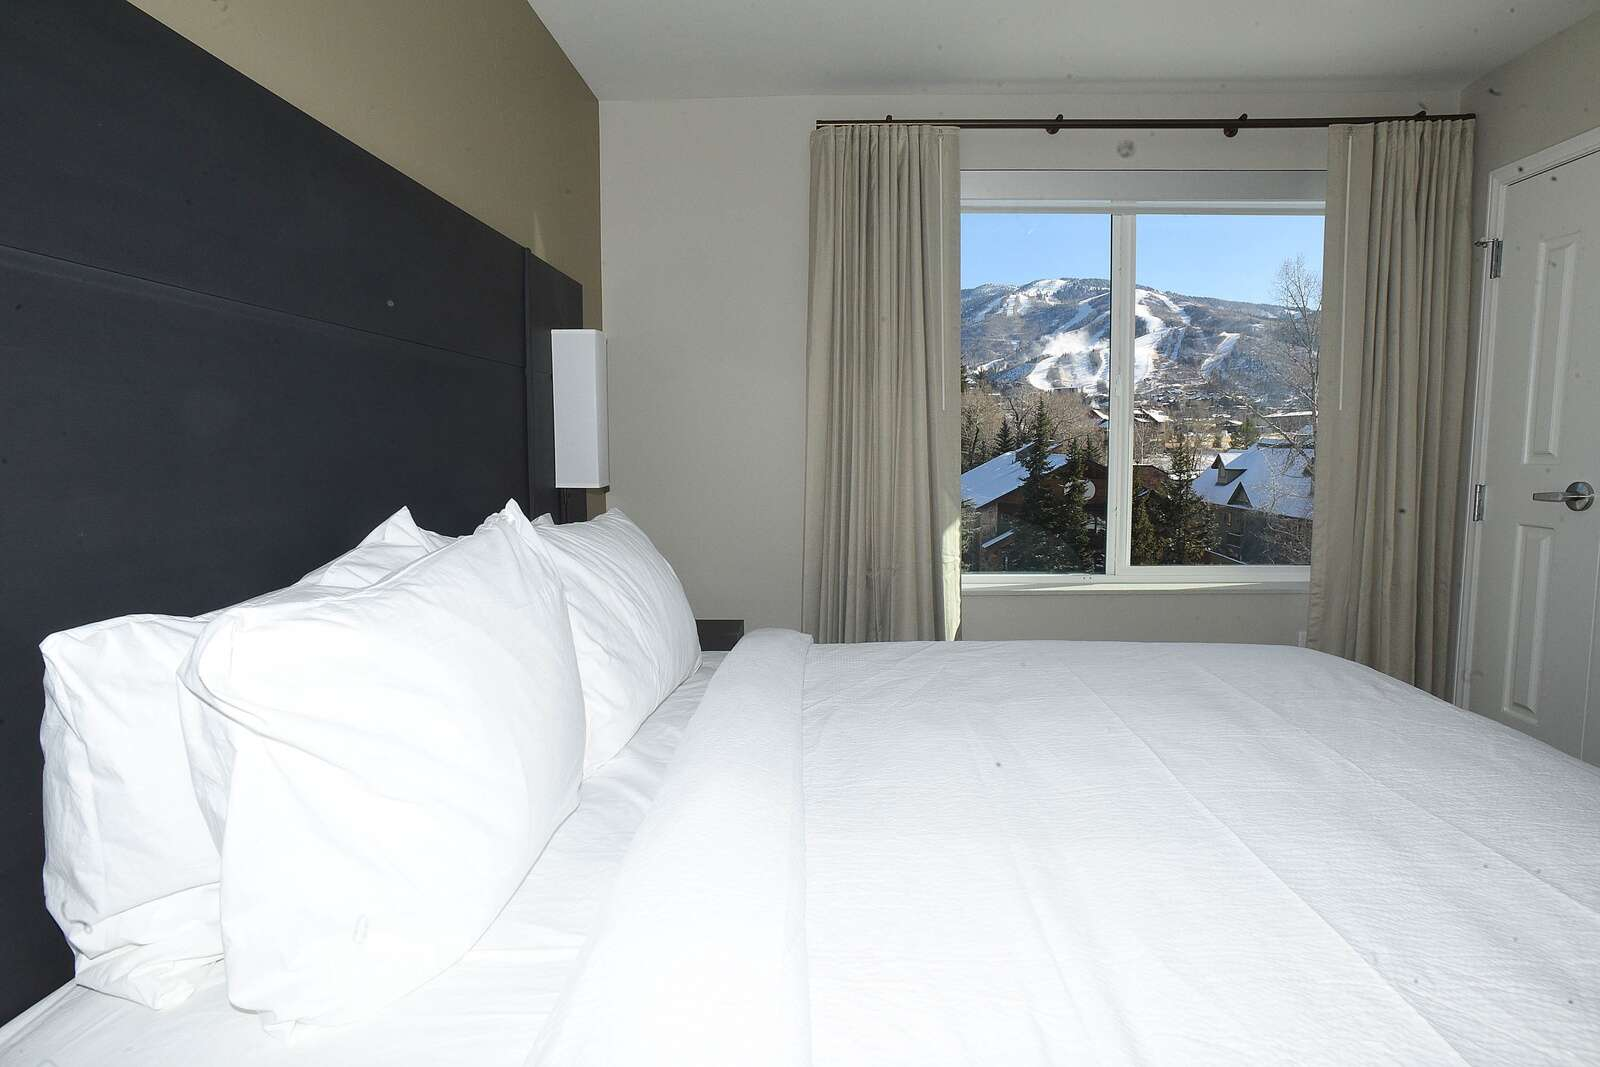 This one-bedroom suite at the new Residence Inn by Marriott offers a king bed, and view of Mount Werner and the nearby slopes of the Steamboat Resort. (Photo by John F. Russell)